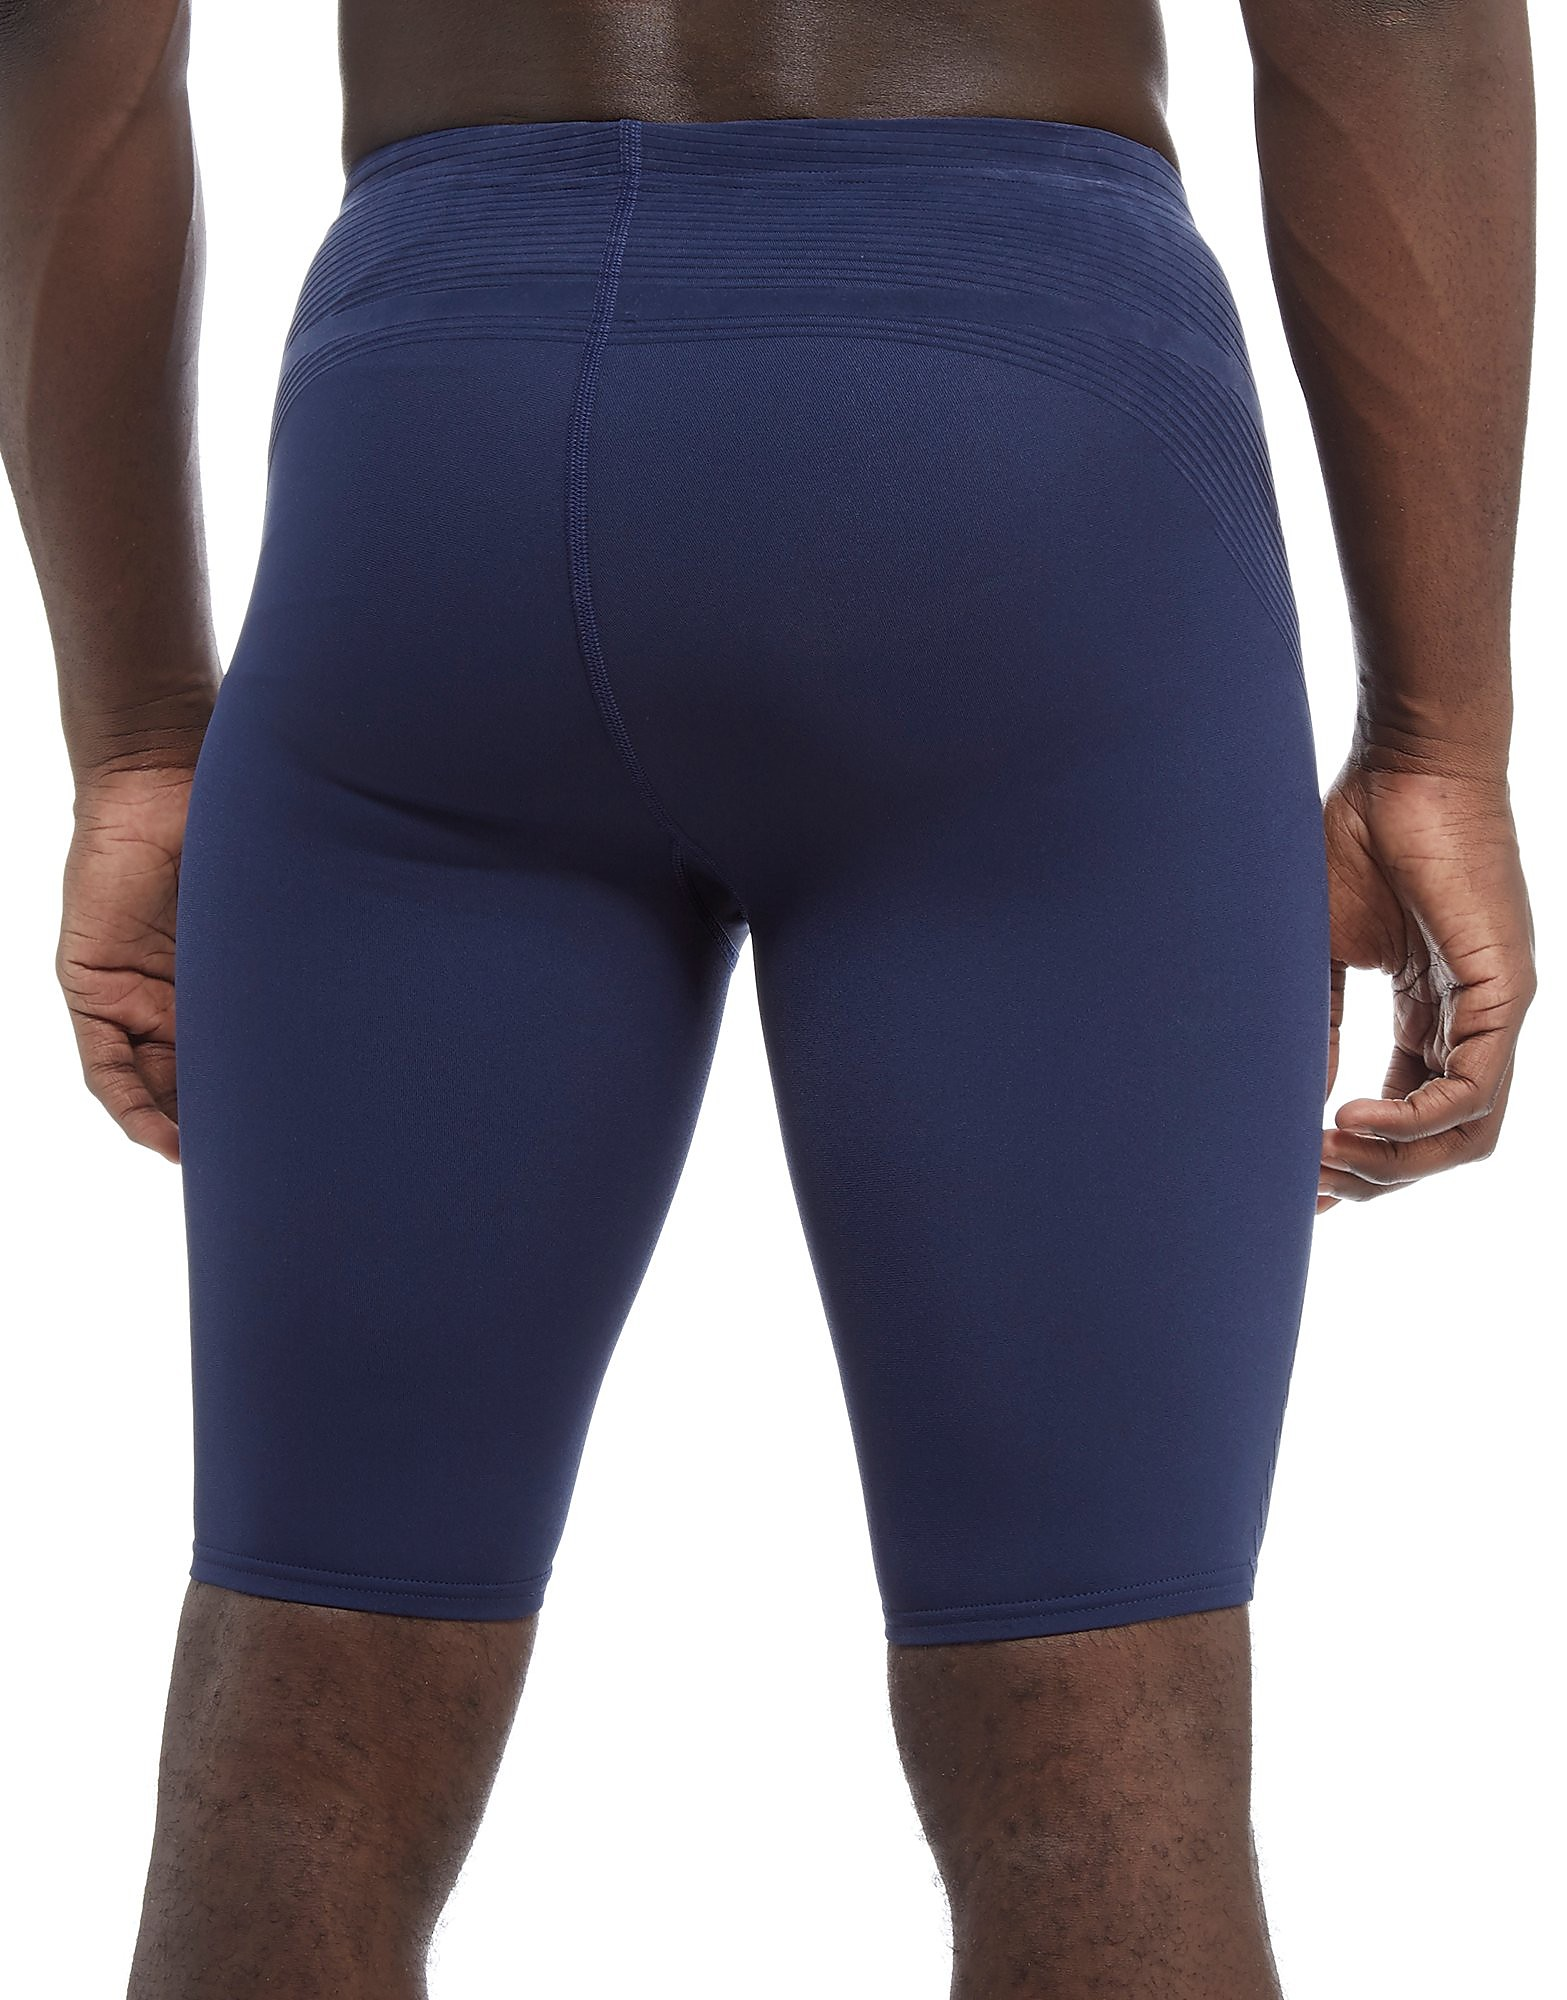 Speedo Fit Power Form Jammer Shorts